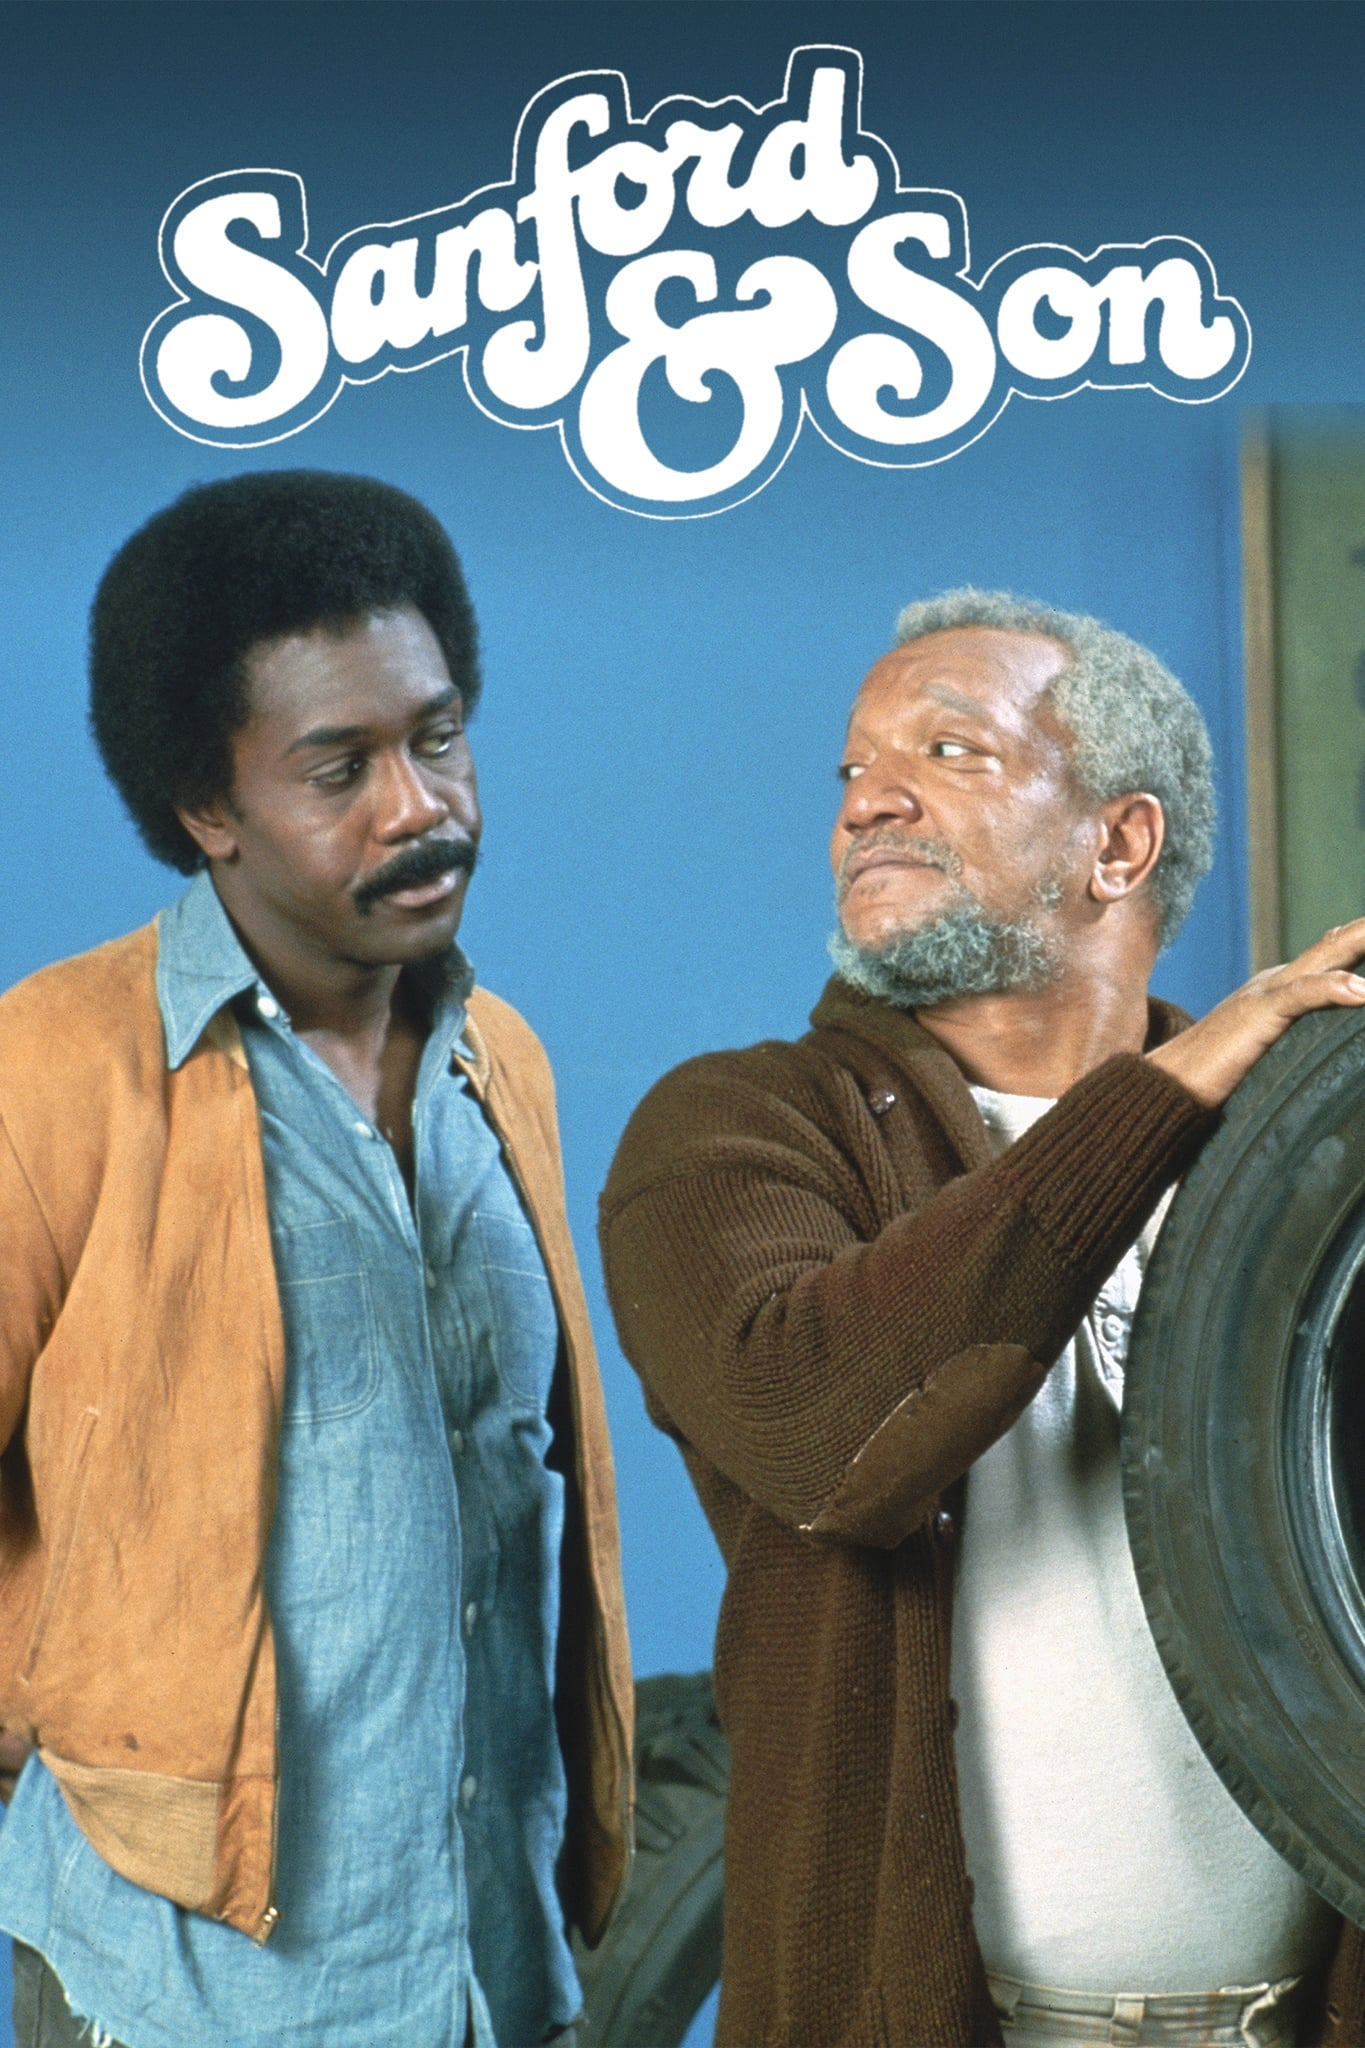 Sanford and Son TV Series 19721977  Posters  The